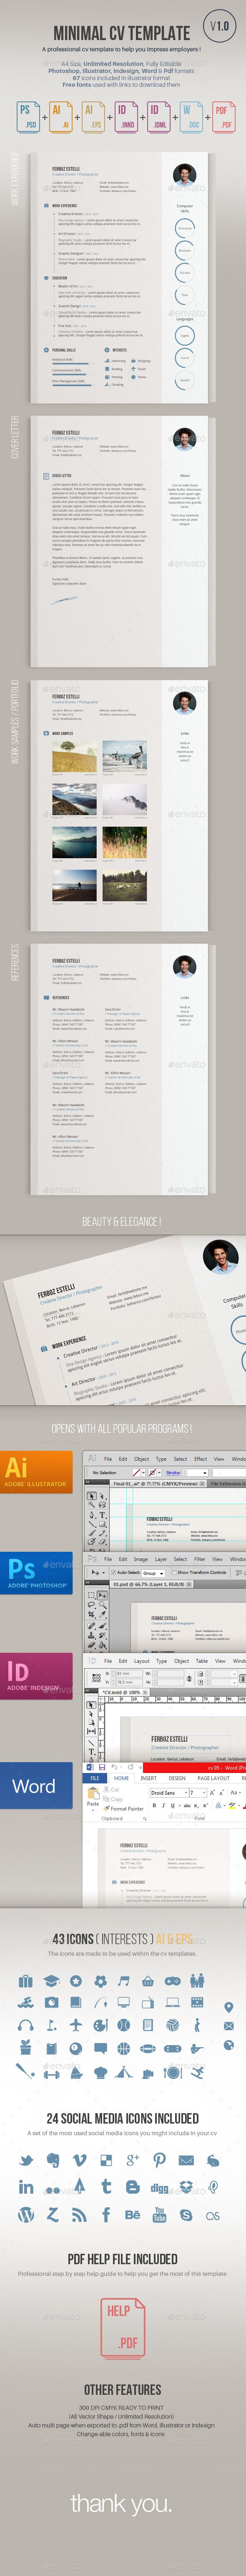 A minimal modern organized cv template for a professional impression by employers.